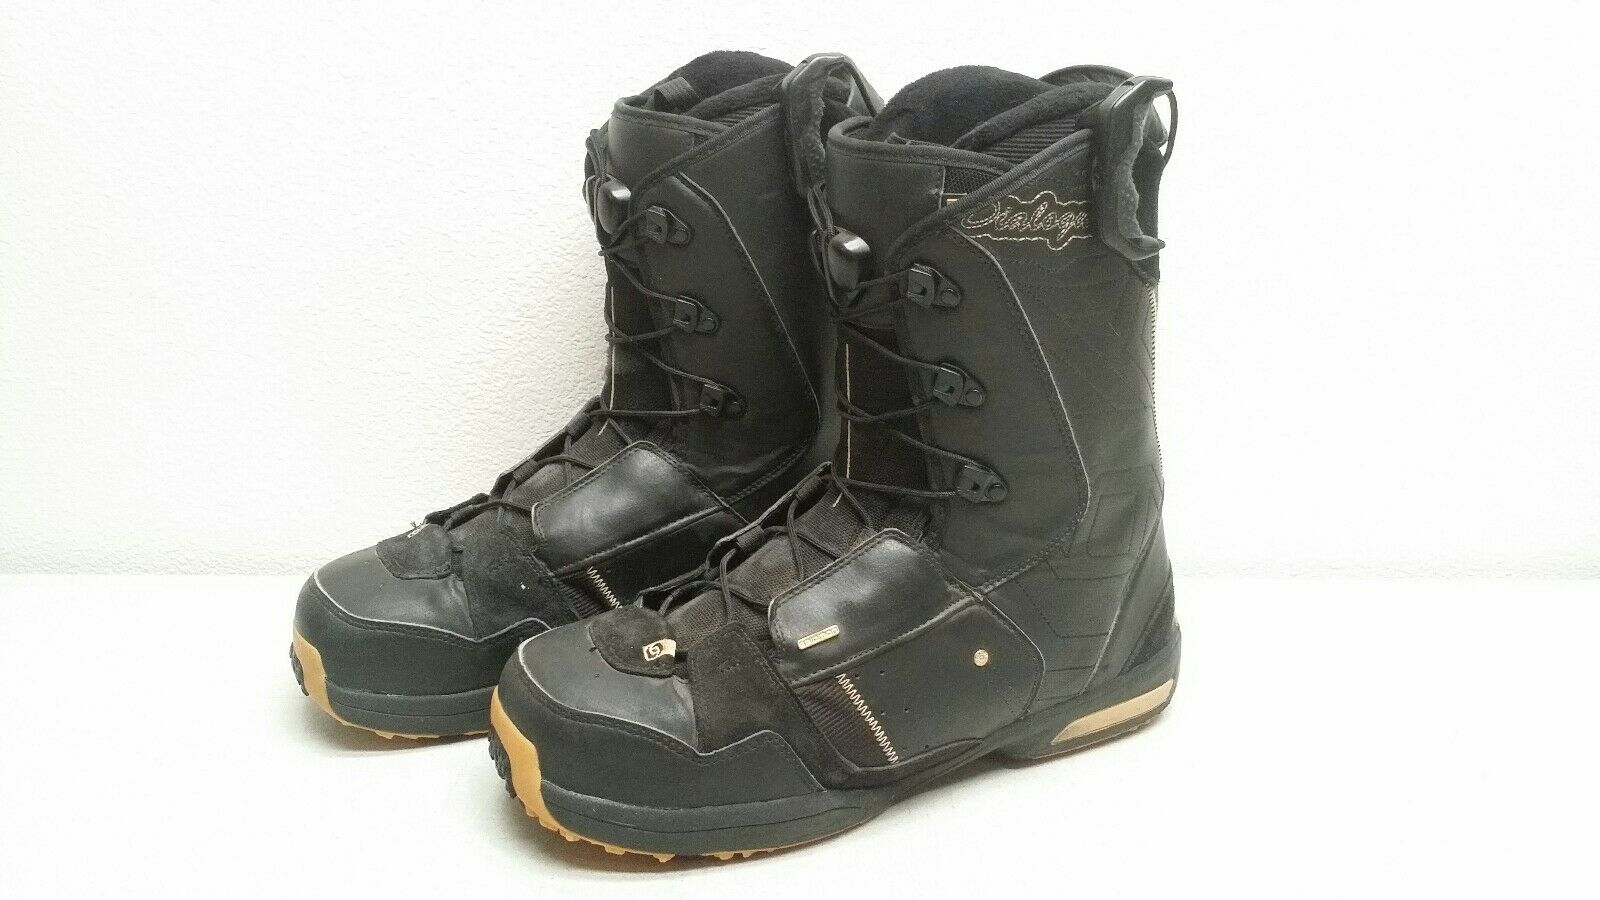 Men's Salomon  Dialogue Snowboard Boots Size US 14.5 used  at the lowest price